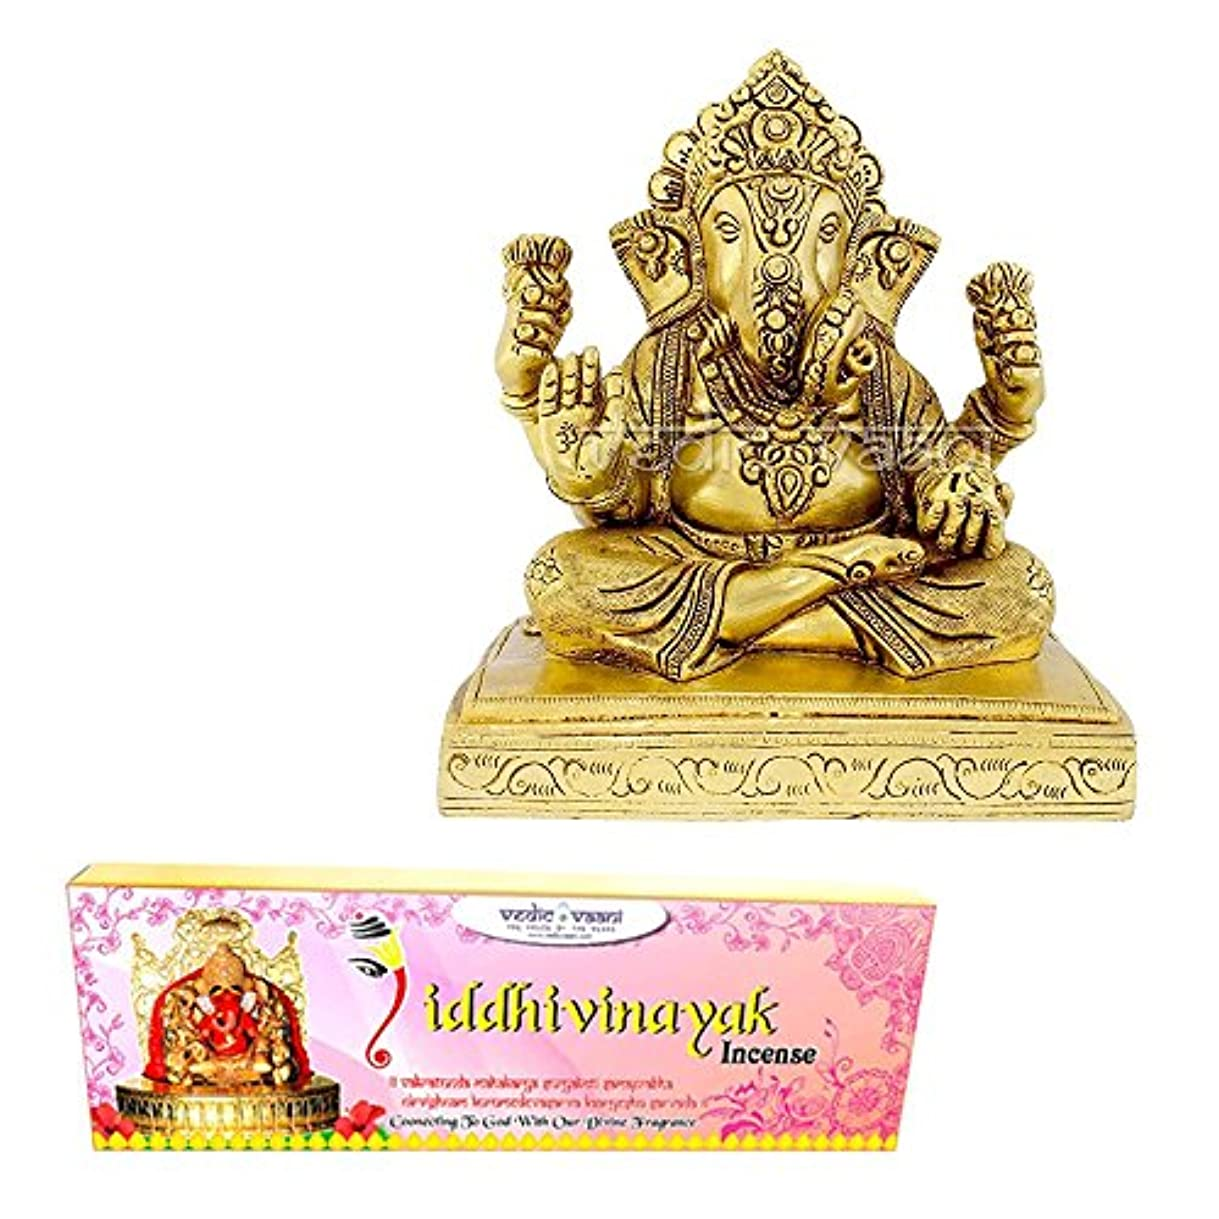 空の論理的納税者Vedic Vaani Dagadusheth Ganpati Bappa Fine Idol In Brass With Siddhi Vinayak Incense